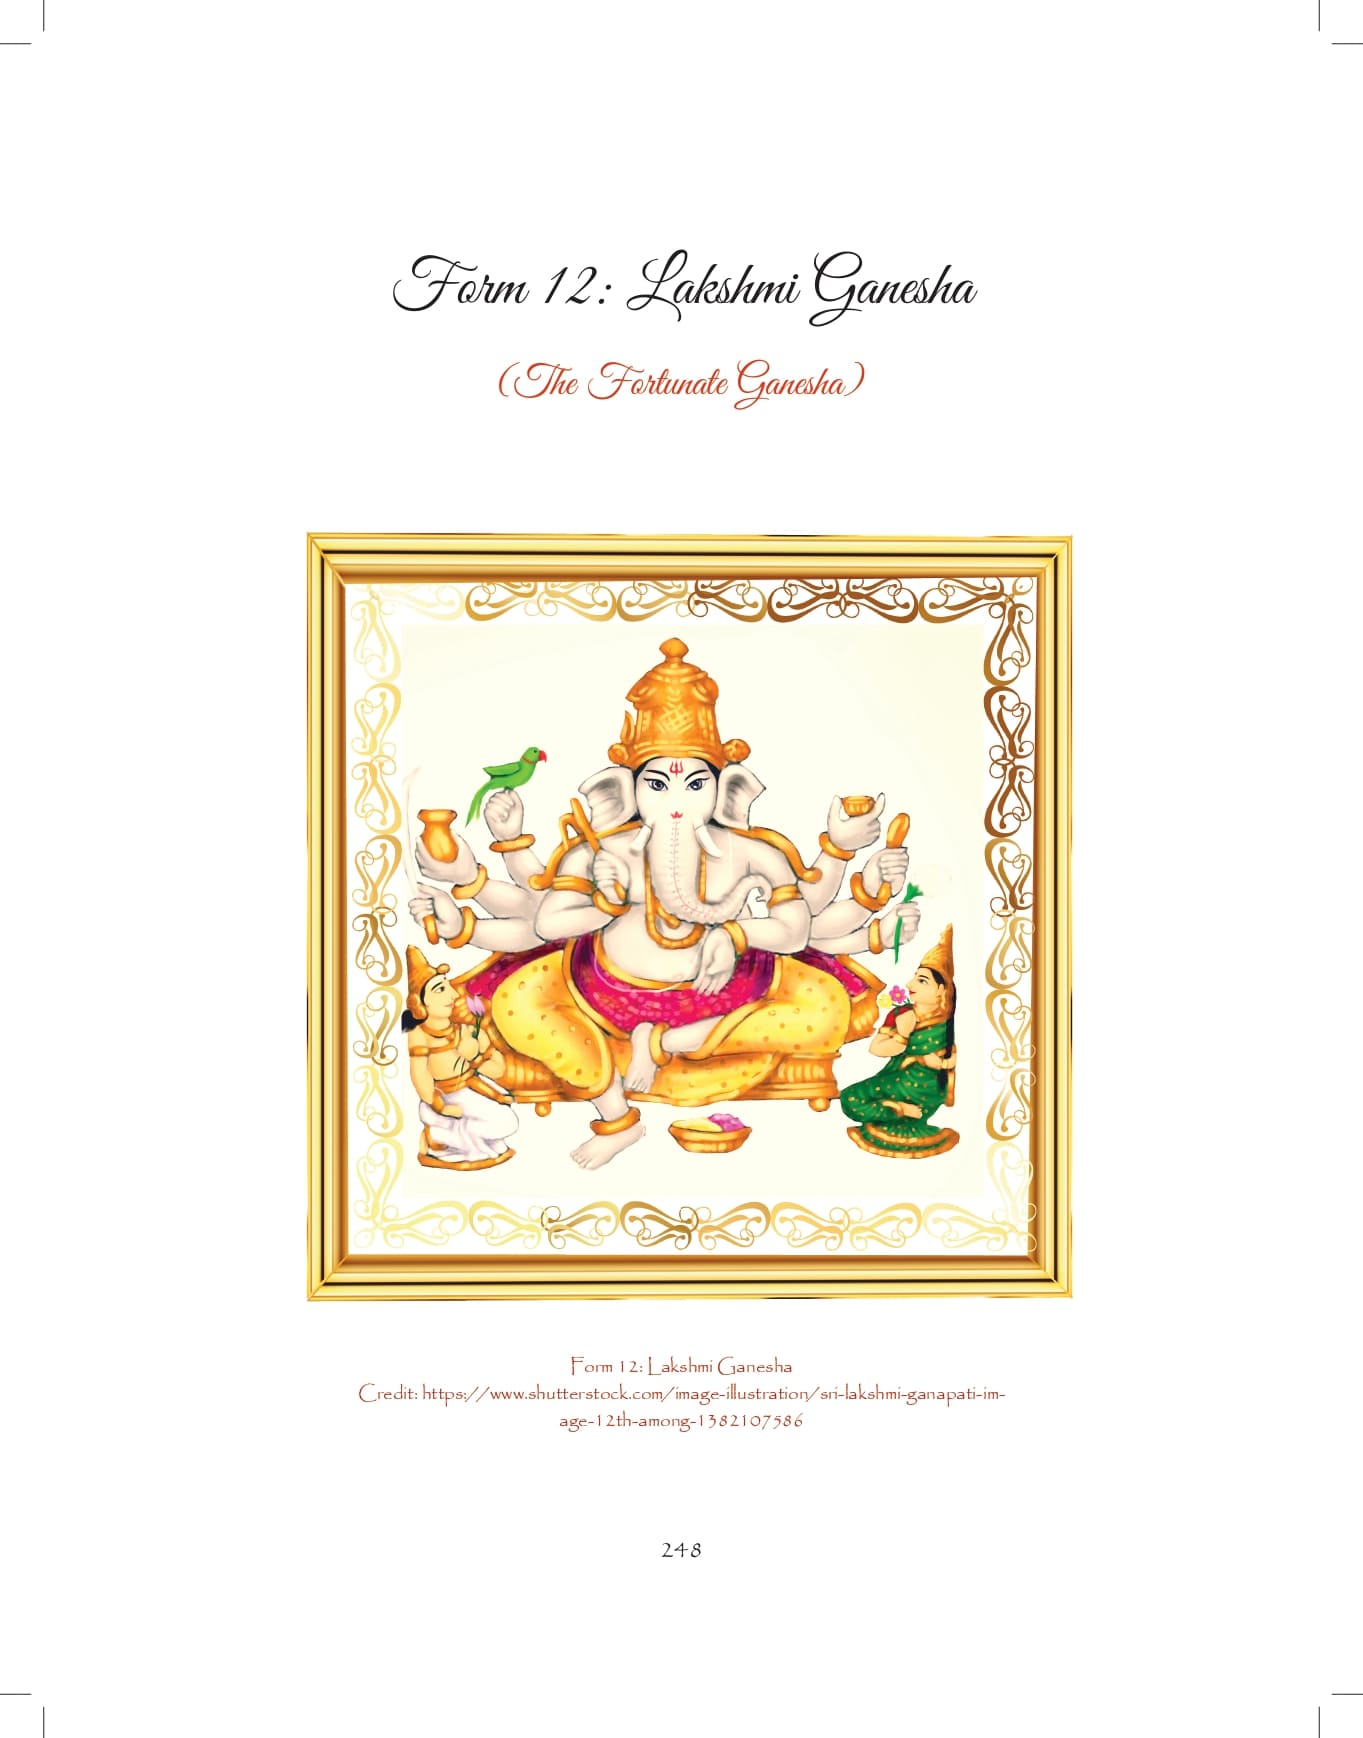 Ganesh-print_pages-to-jpg-0248.jpg